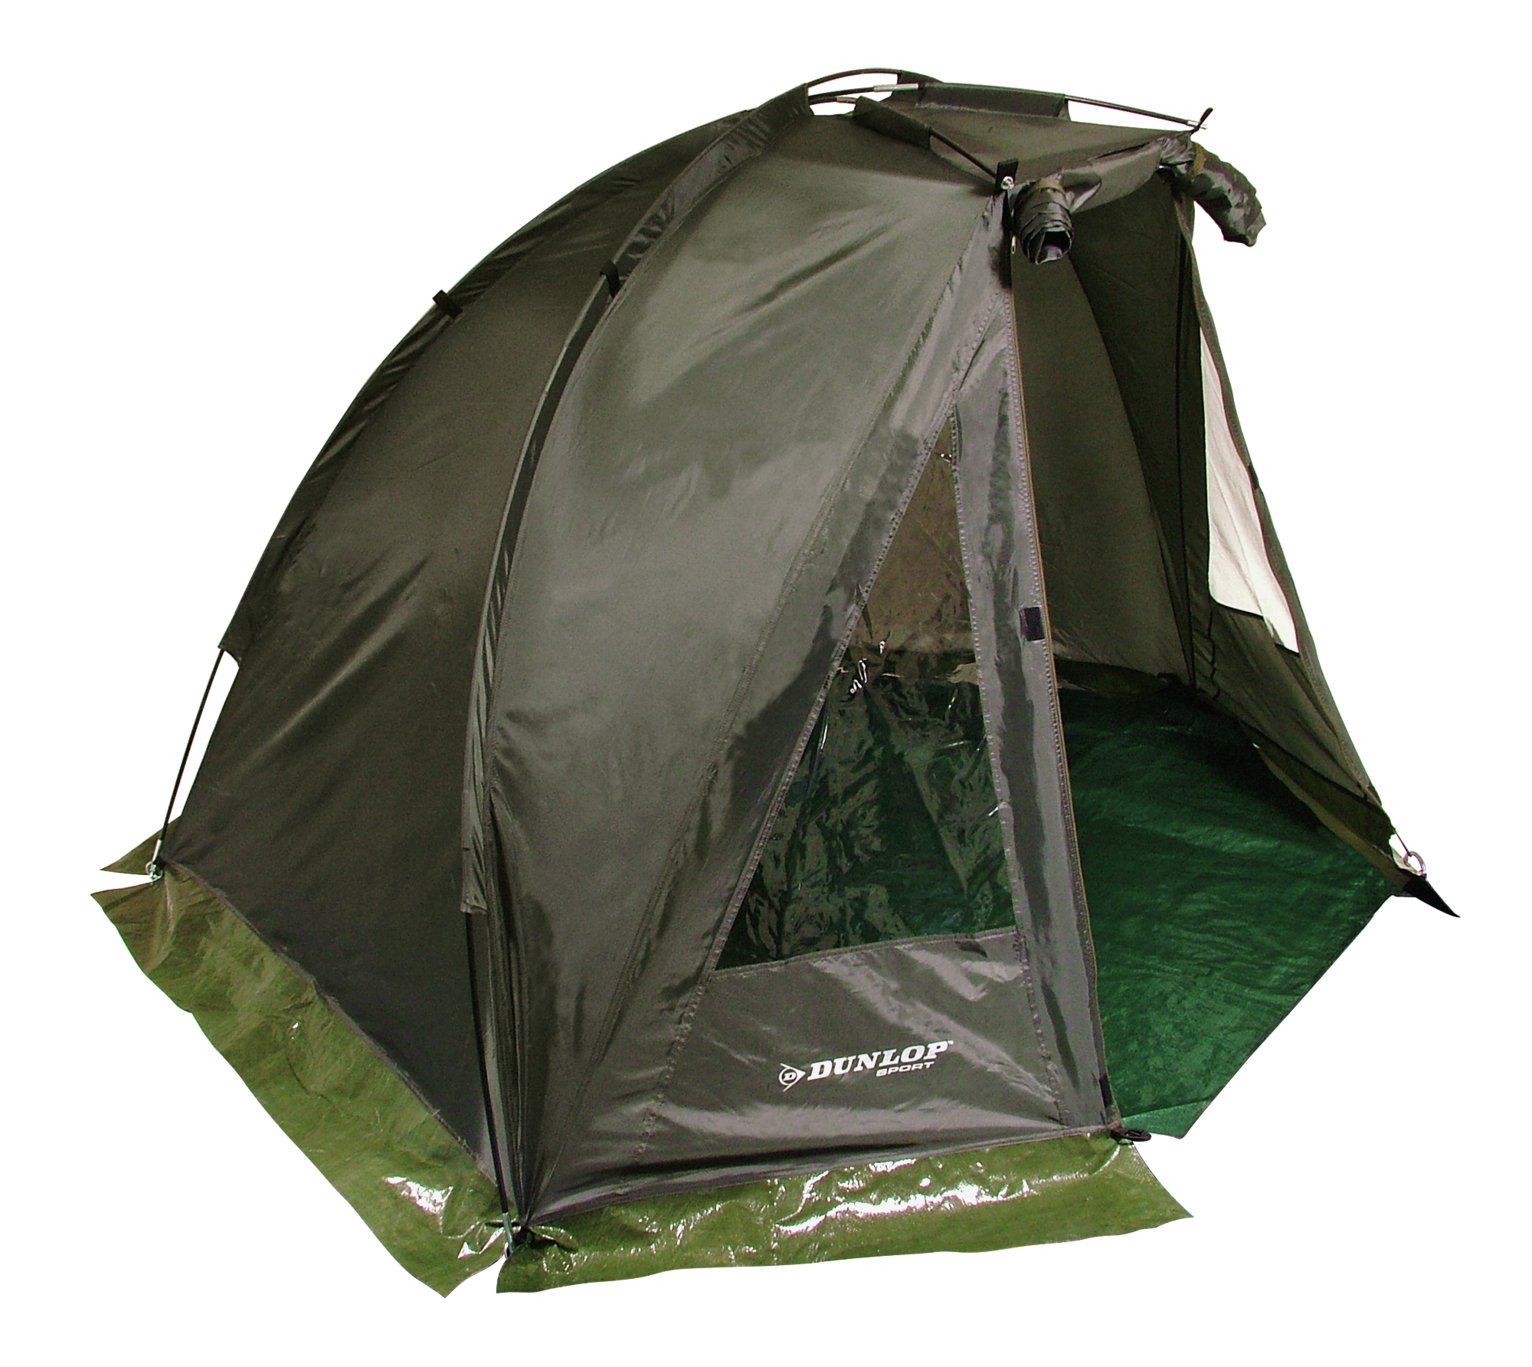 Dunlop Fishing Carp Shelter from Dunlop